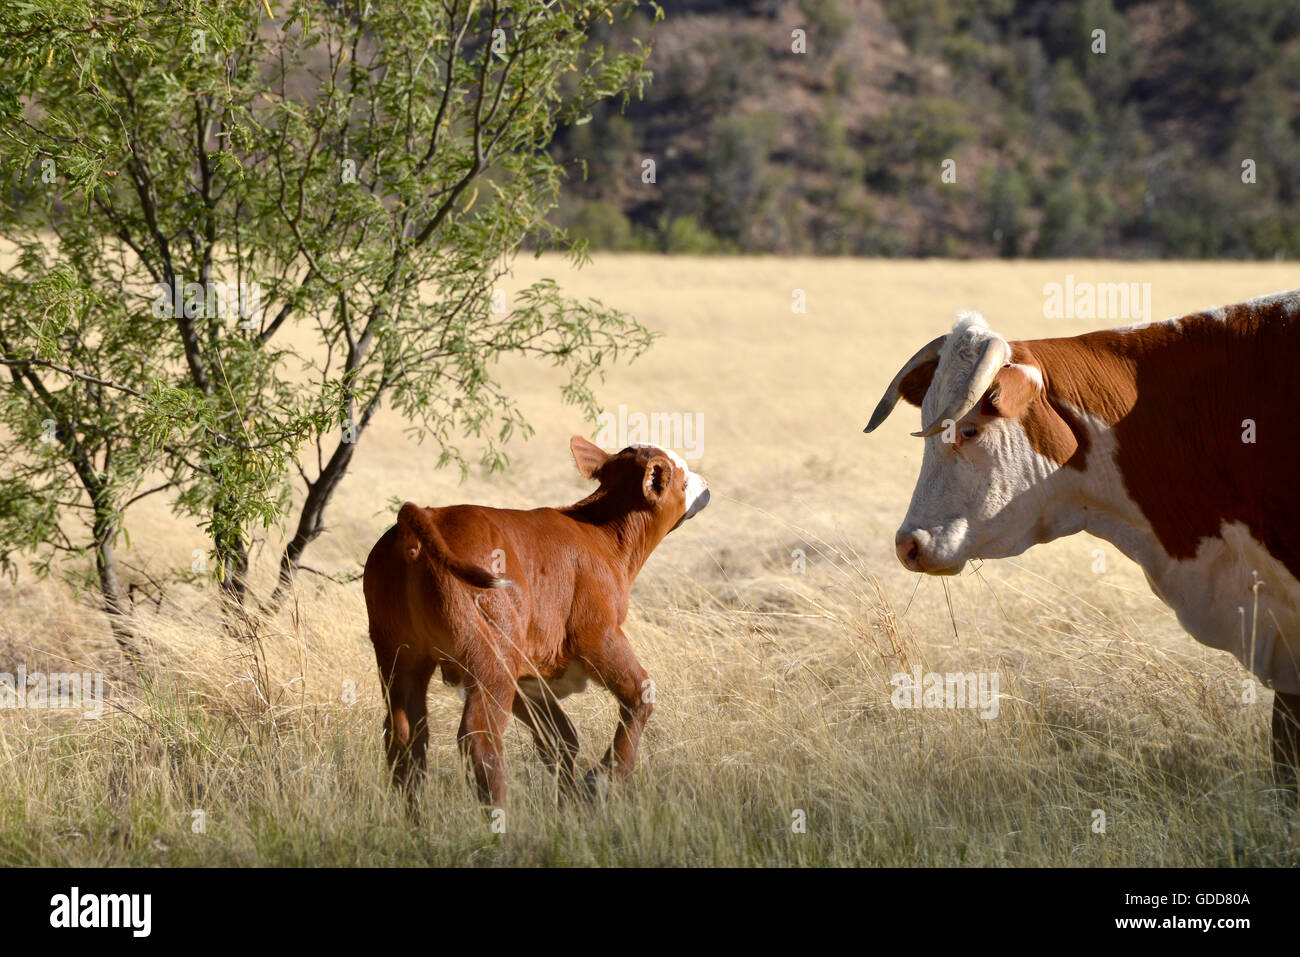 Cattle graze on open range, Coronado National Forest, Santa Rita Mountains, Sonoita, Arizona, USA. Stock Photo